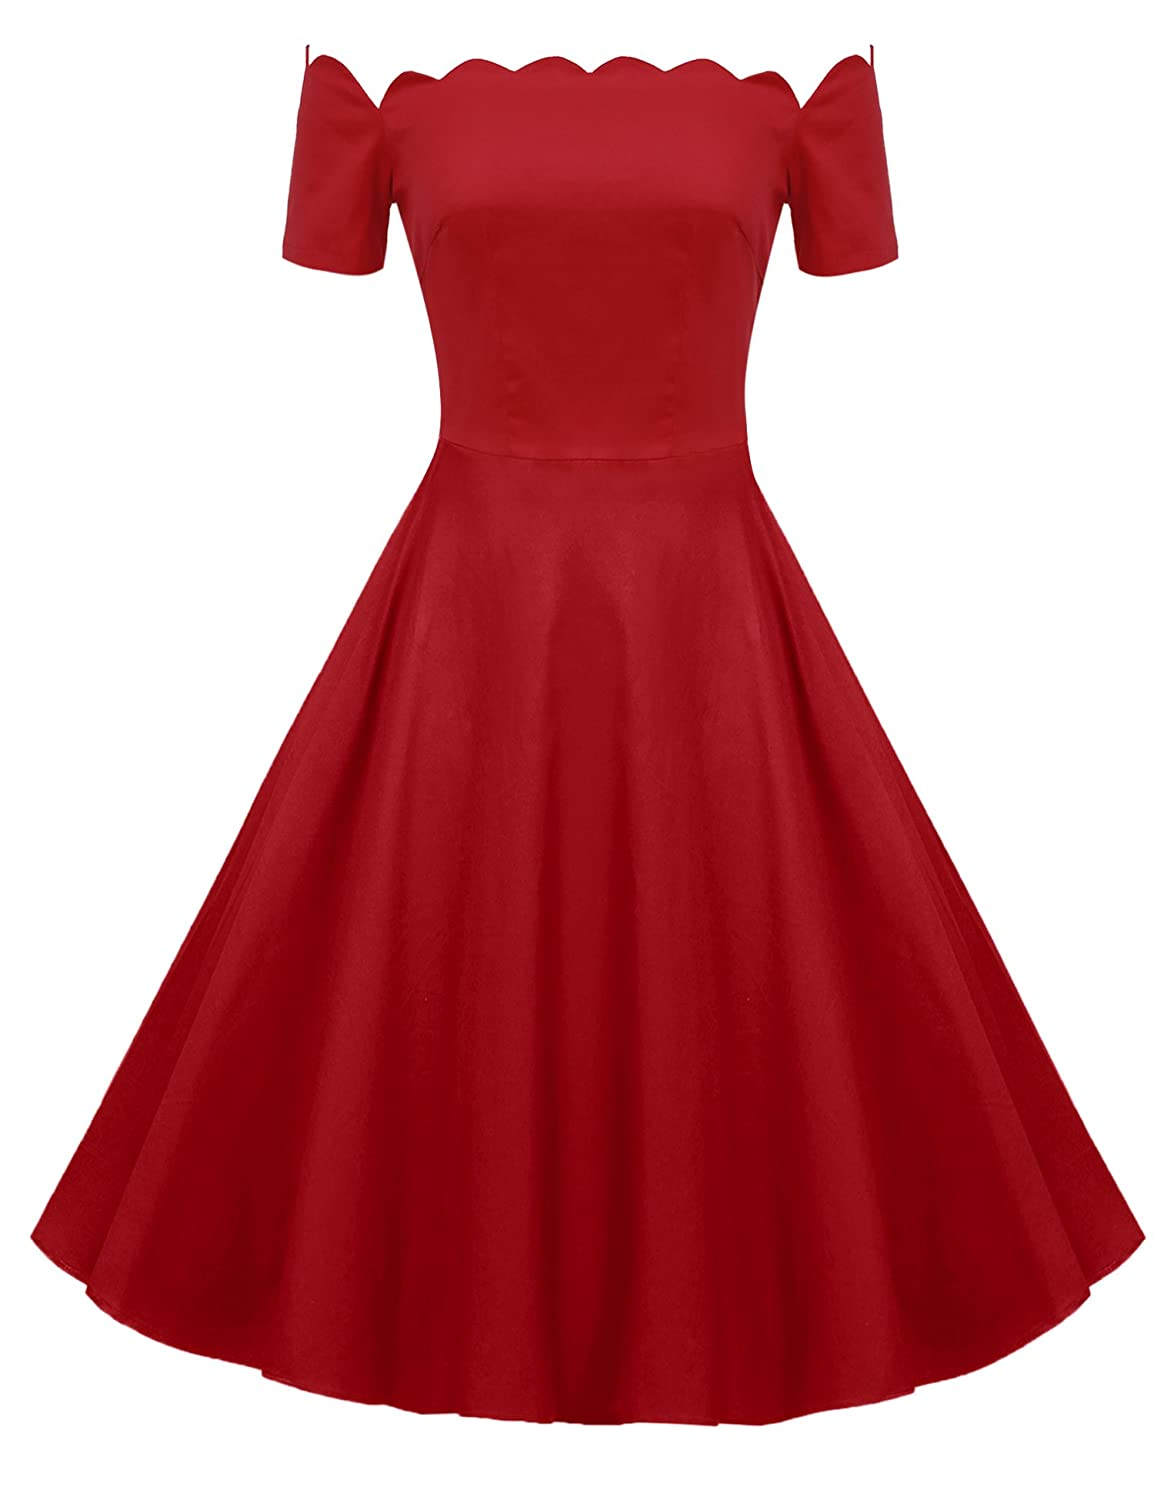 ACEVOG 1950's Short Sleeve Wave Point Retro Vintage Dress with Defined Waist Design 0AV003900